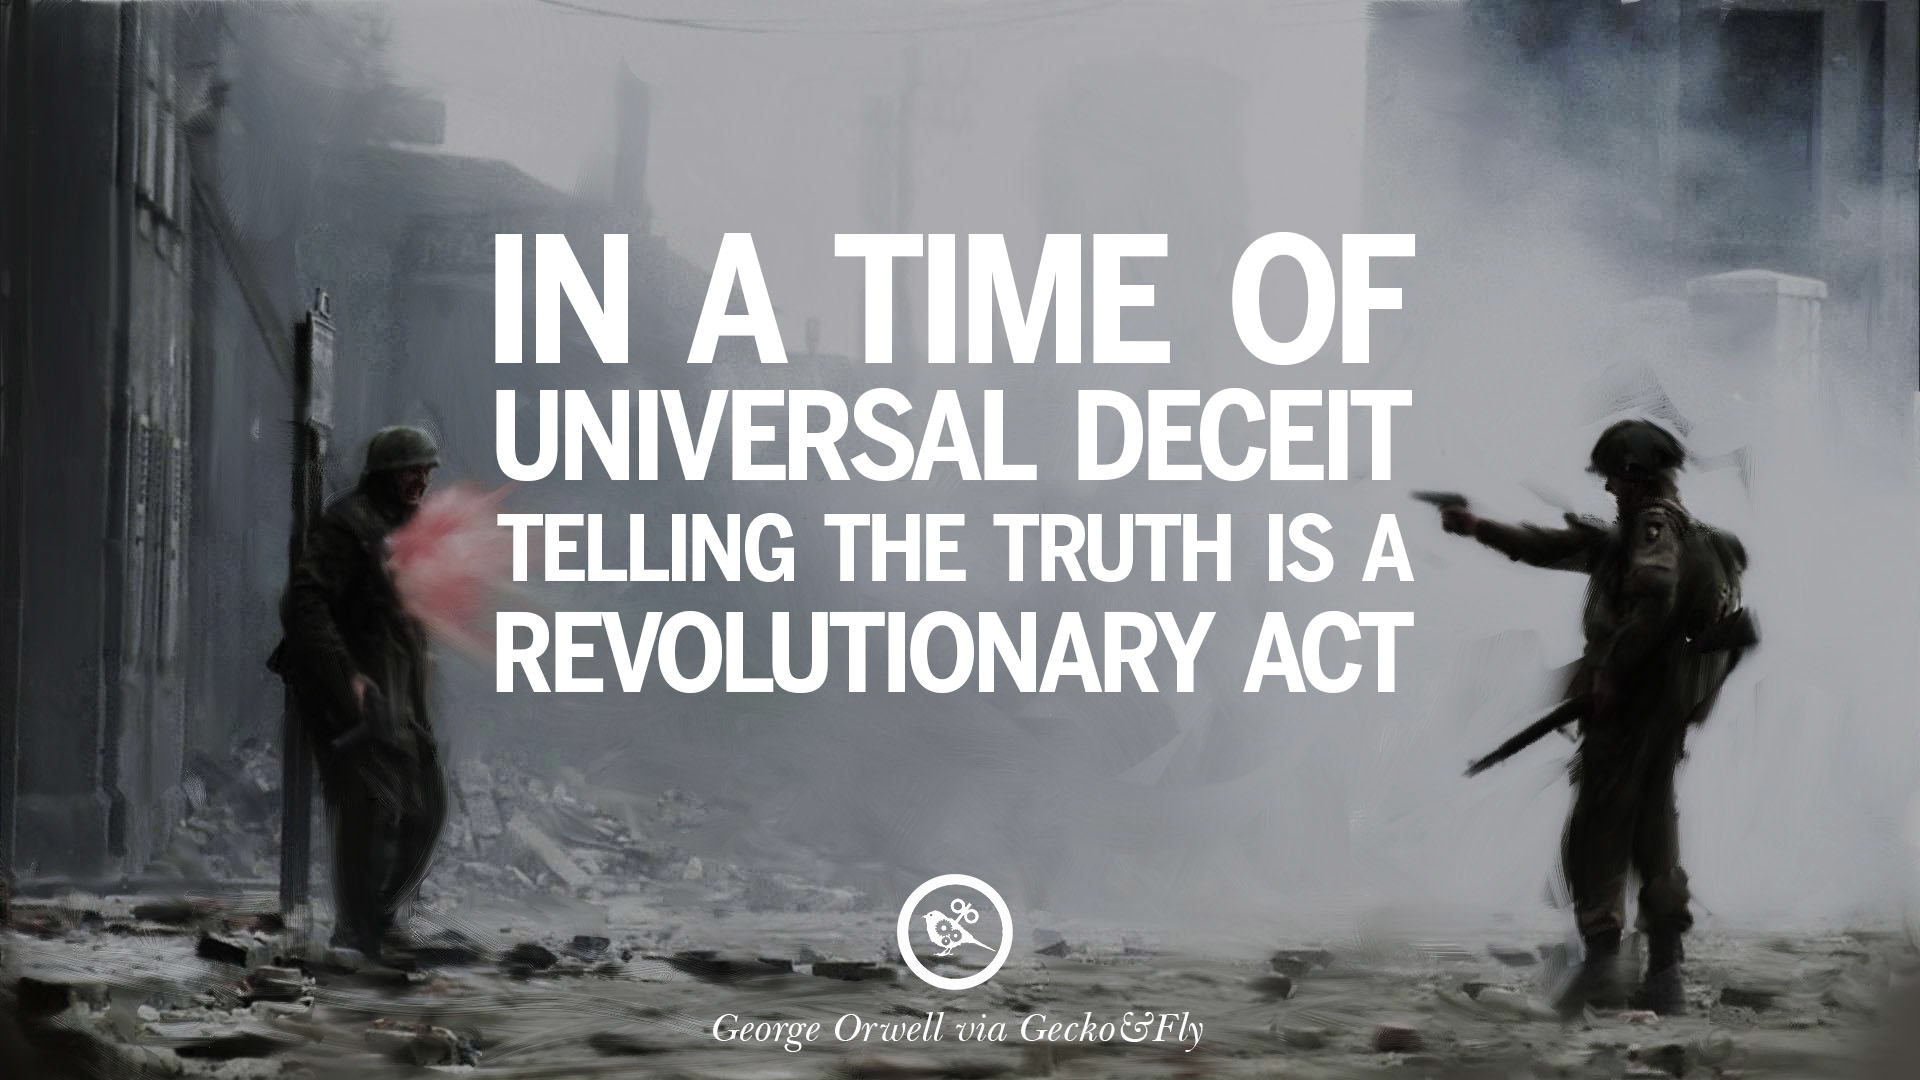 1984 I Love You Quote : In a time of universal deceit telling the truth is a revolutionary act ...